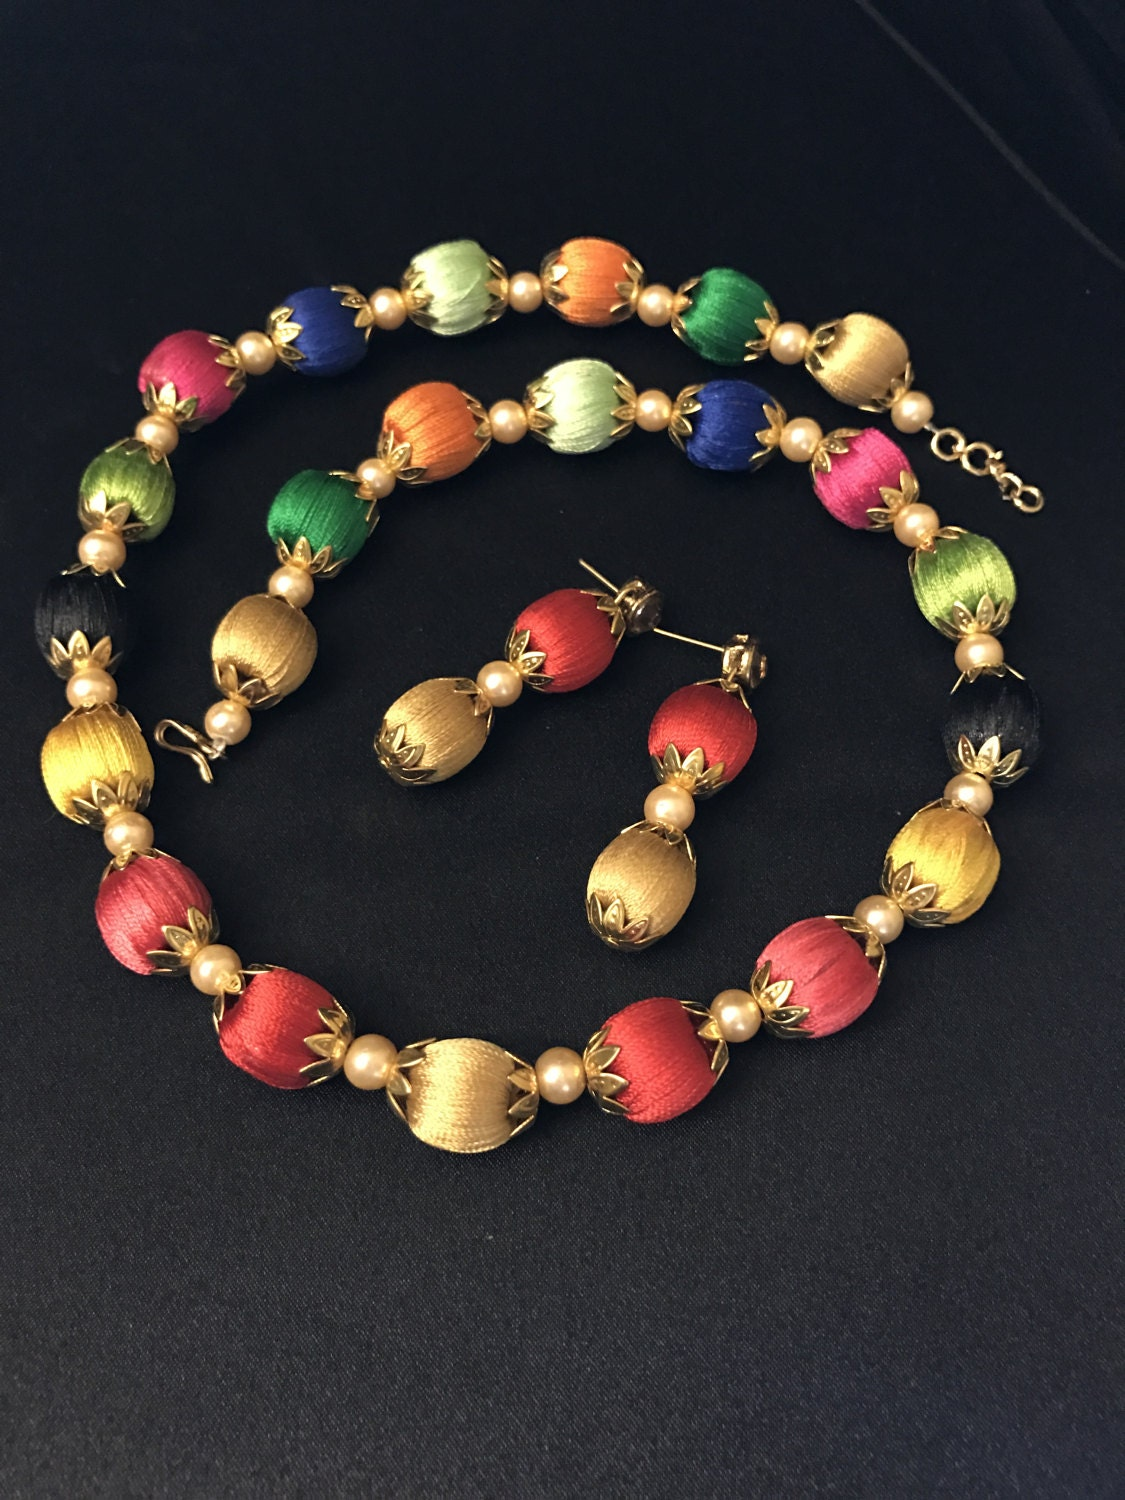 Silk Thread Jewelry Multi Color Indian Jewelry Indian. Heart Ankle Bracelet. Emerald Earrings. New Gold Chains. 10 Carat Rings. Neck Pendant. Simulated Diamond. Surgical Steel Stud Earrings. Layered Rings